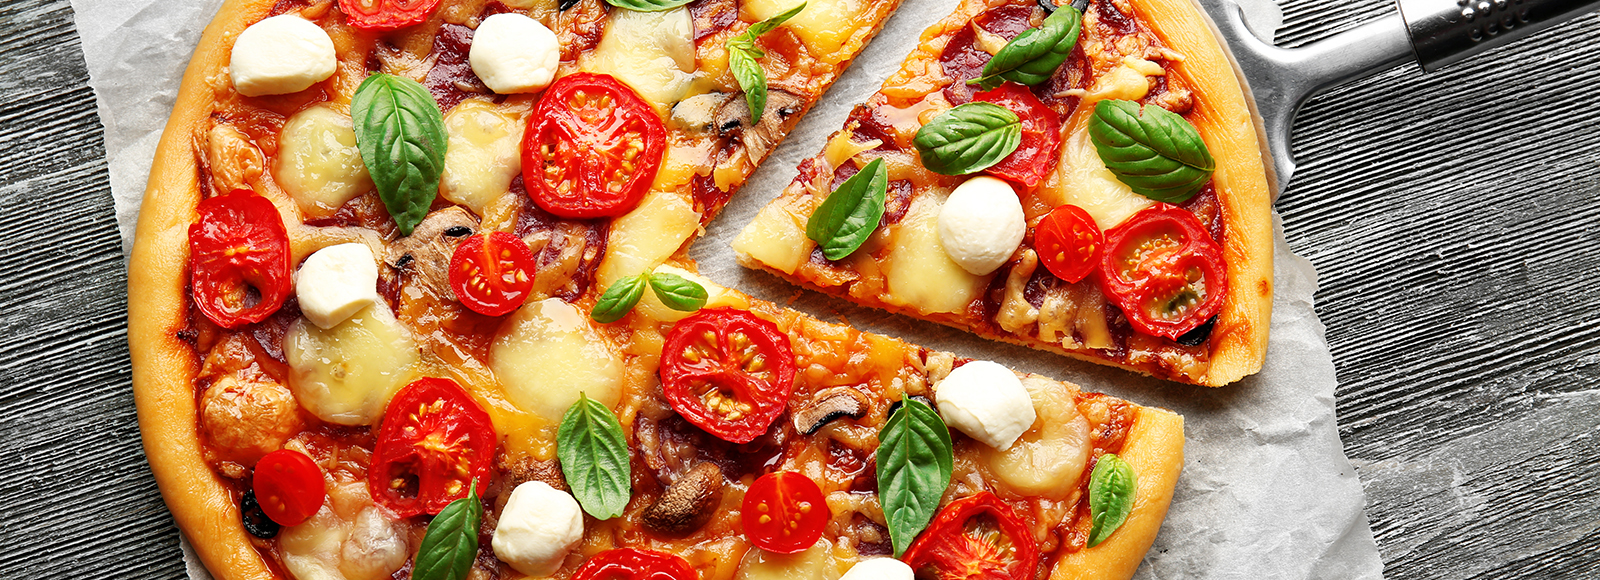 Milano Pizza Milano Pizza Wigan Takeaway Order Online